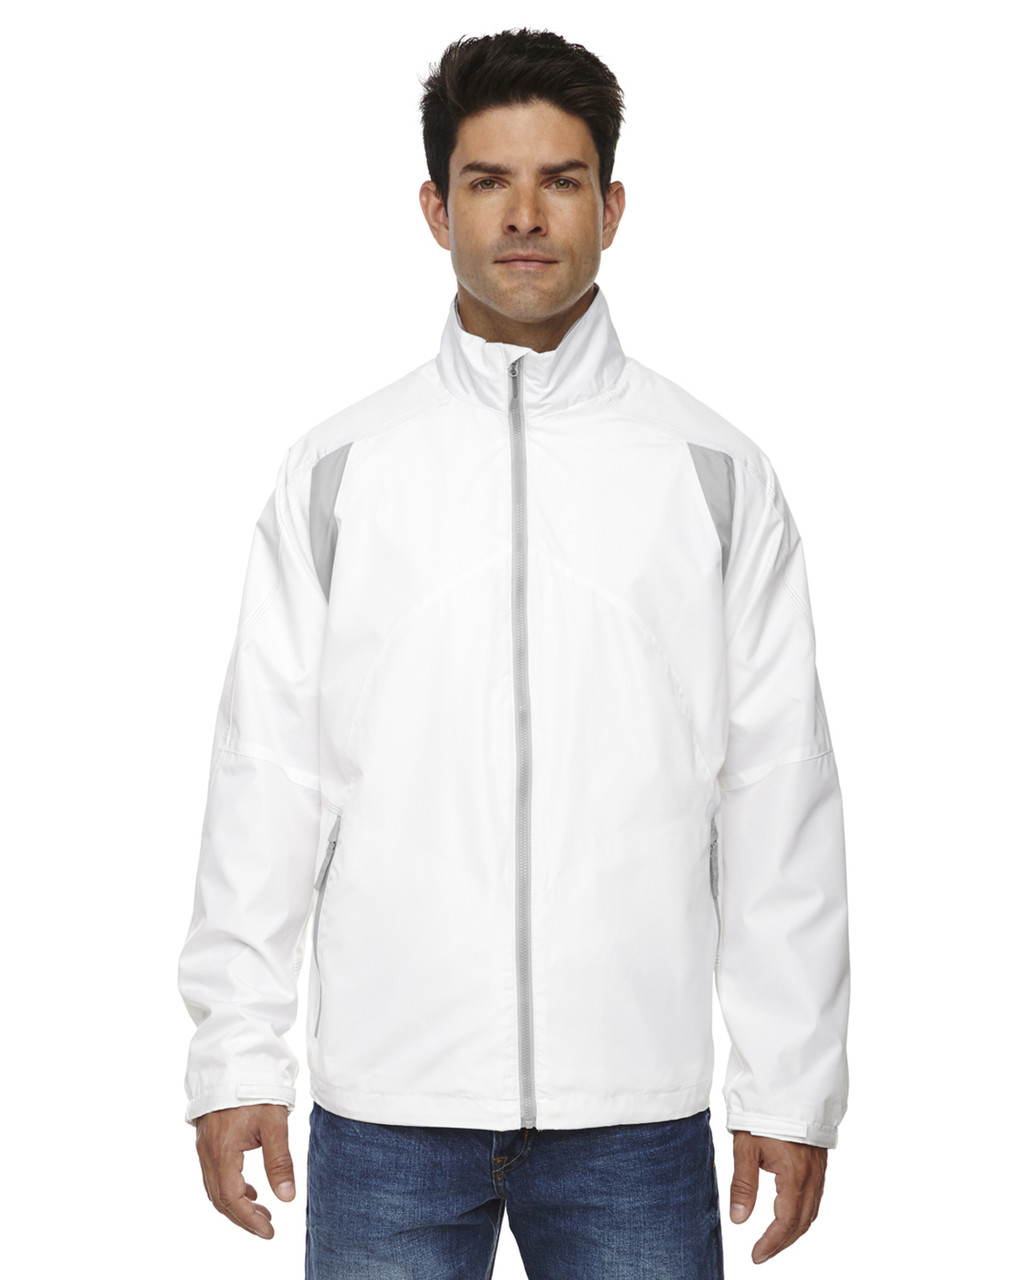 White - 88155 North End Men's Lightweight Colour-Block Jacket | Blankclothing.ca